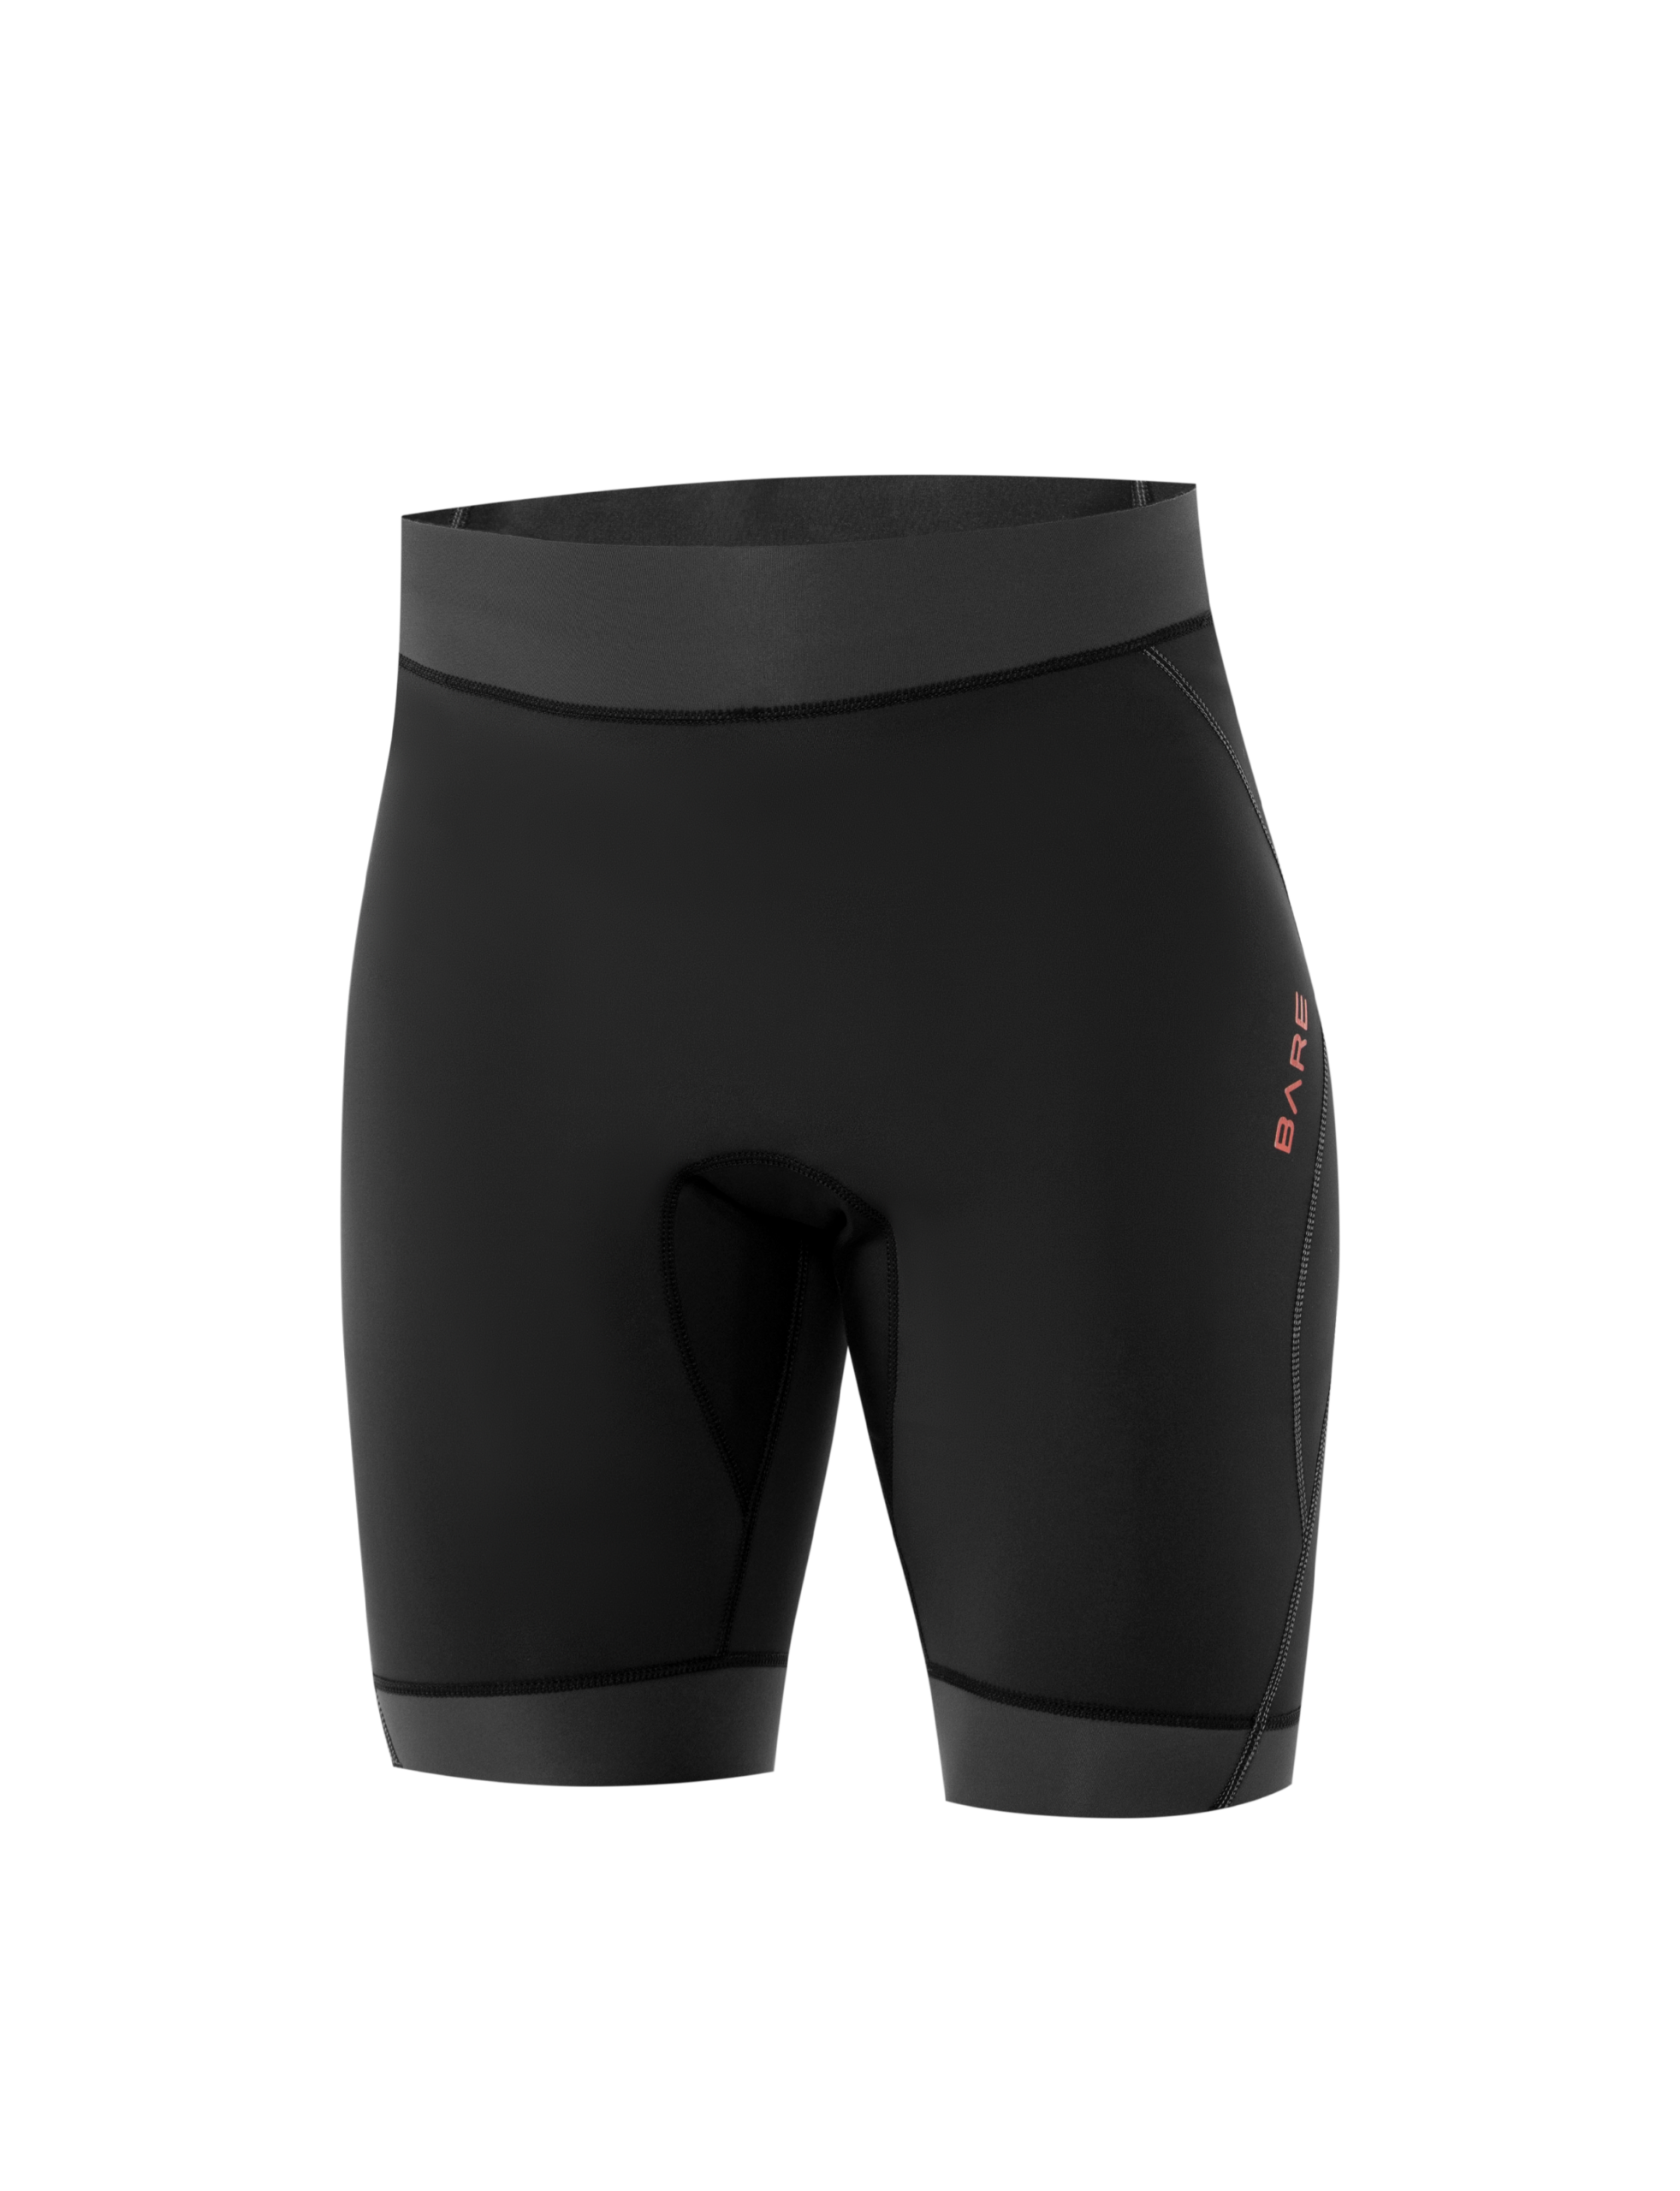 Bare Exowear Shorts Thermal Protection Layer Men/'s Scuba Diving